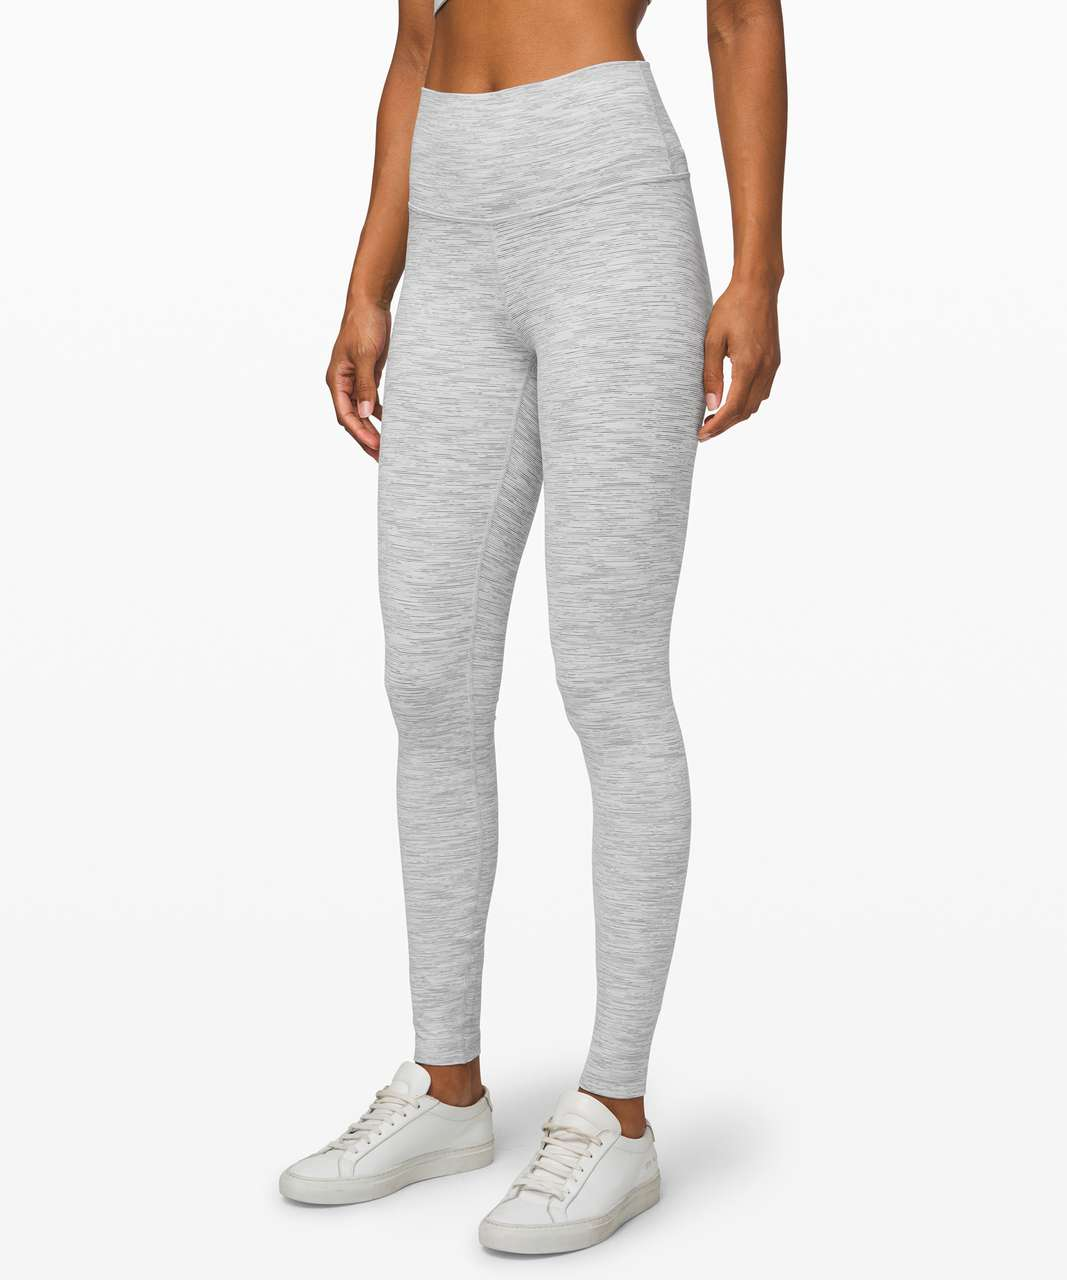 "Lululemon Wunder Under High-Rise Tight 28"" - Wee Are From Space Nimbus Battleship"